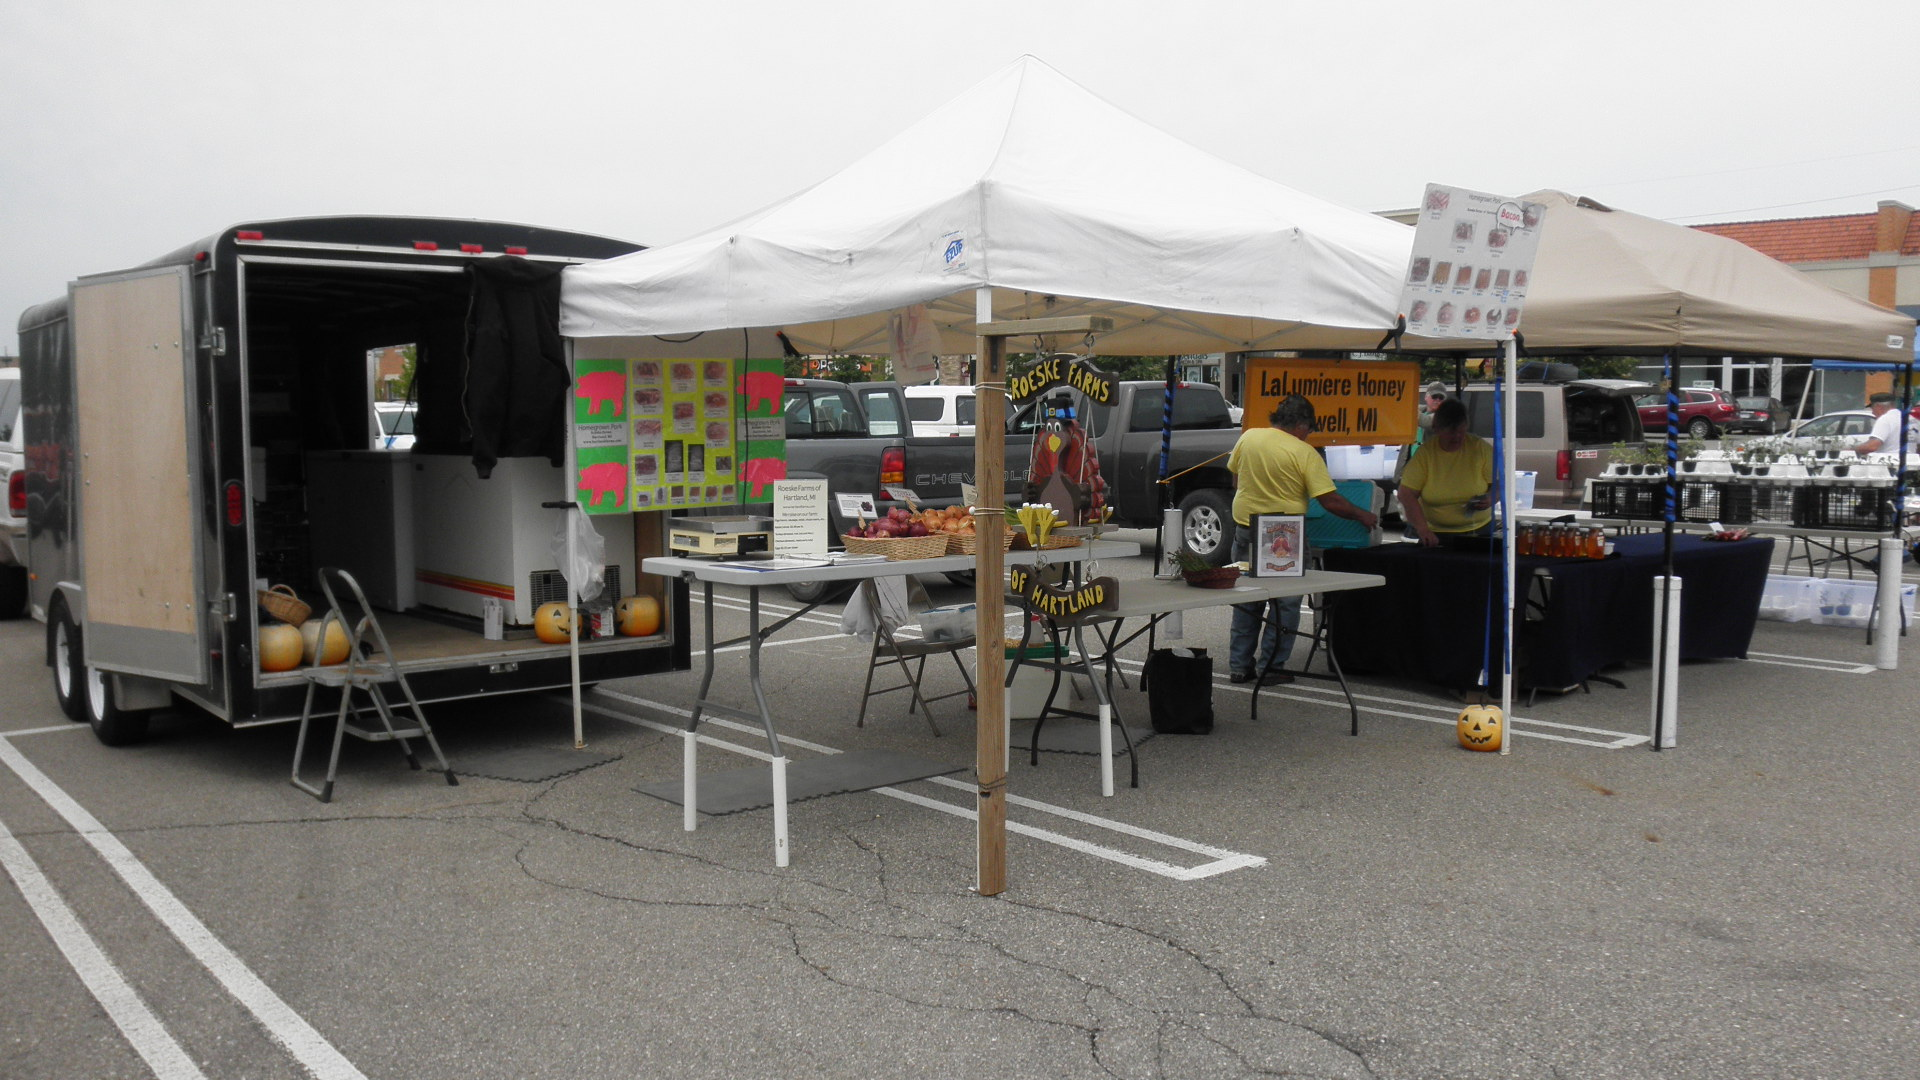 Our booth at the Green Oak Farmer's Market May 2013